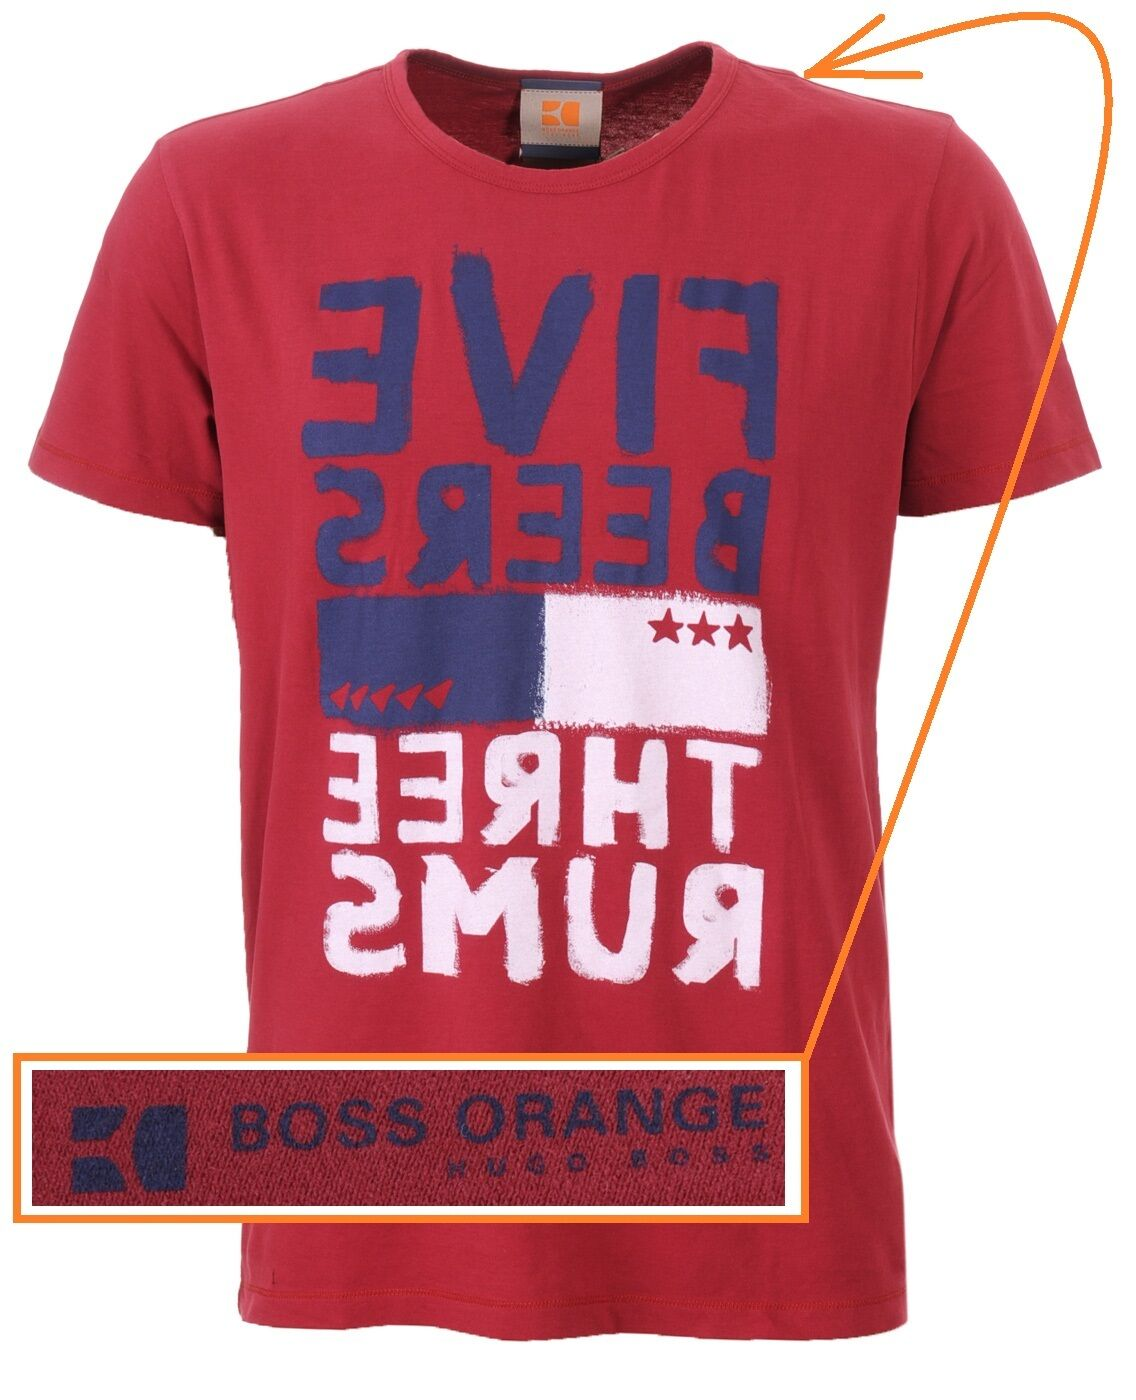 NWT Hugo Boss arancia Label by Tee Hugo Boss LOGO Graphic T-shirt Tee by in rosso Size L 843de2